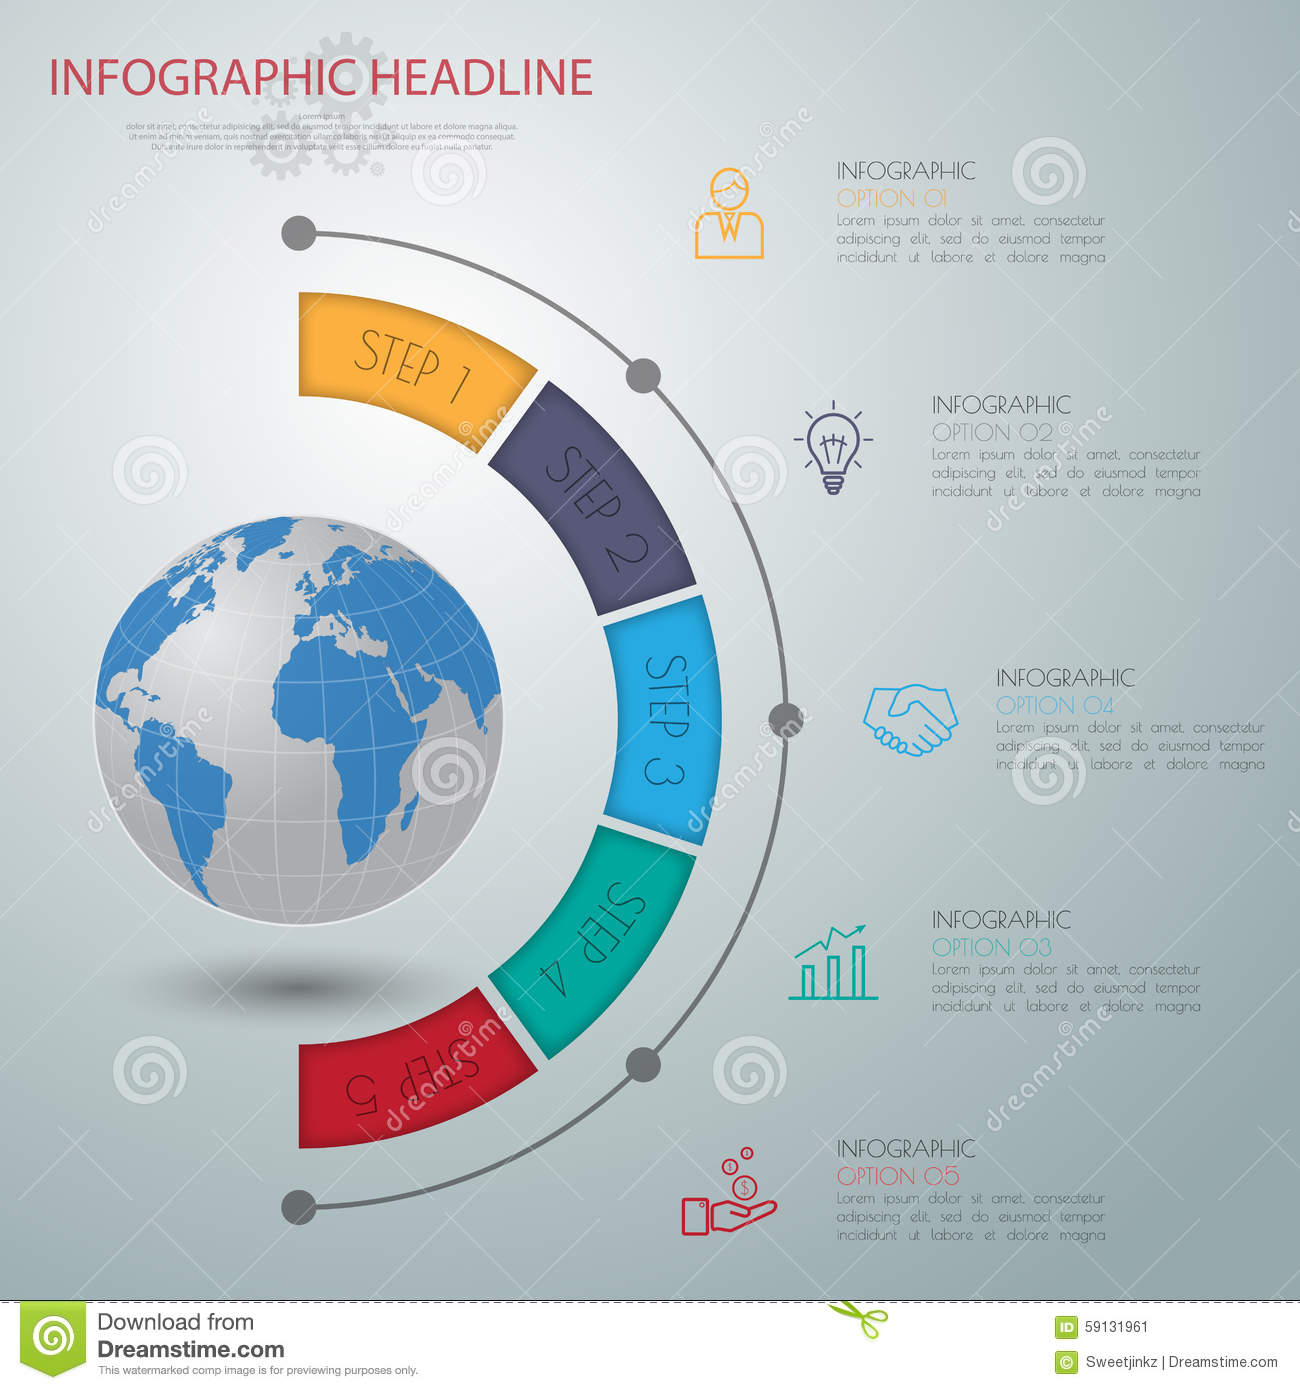 Abstract 3d digital illustration infographic with world mapn abstract 3d digital illustration infographic with world mapn hexagon number gumiabroncs Image collections